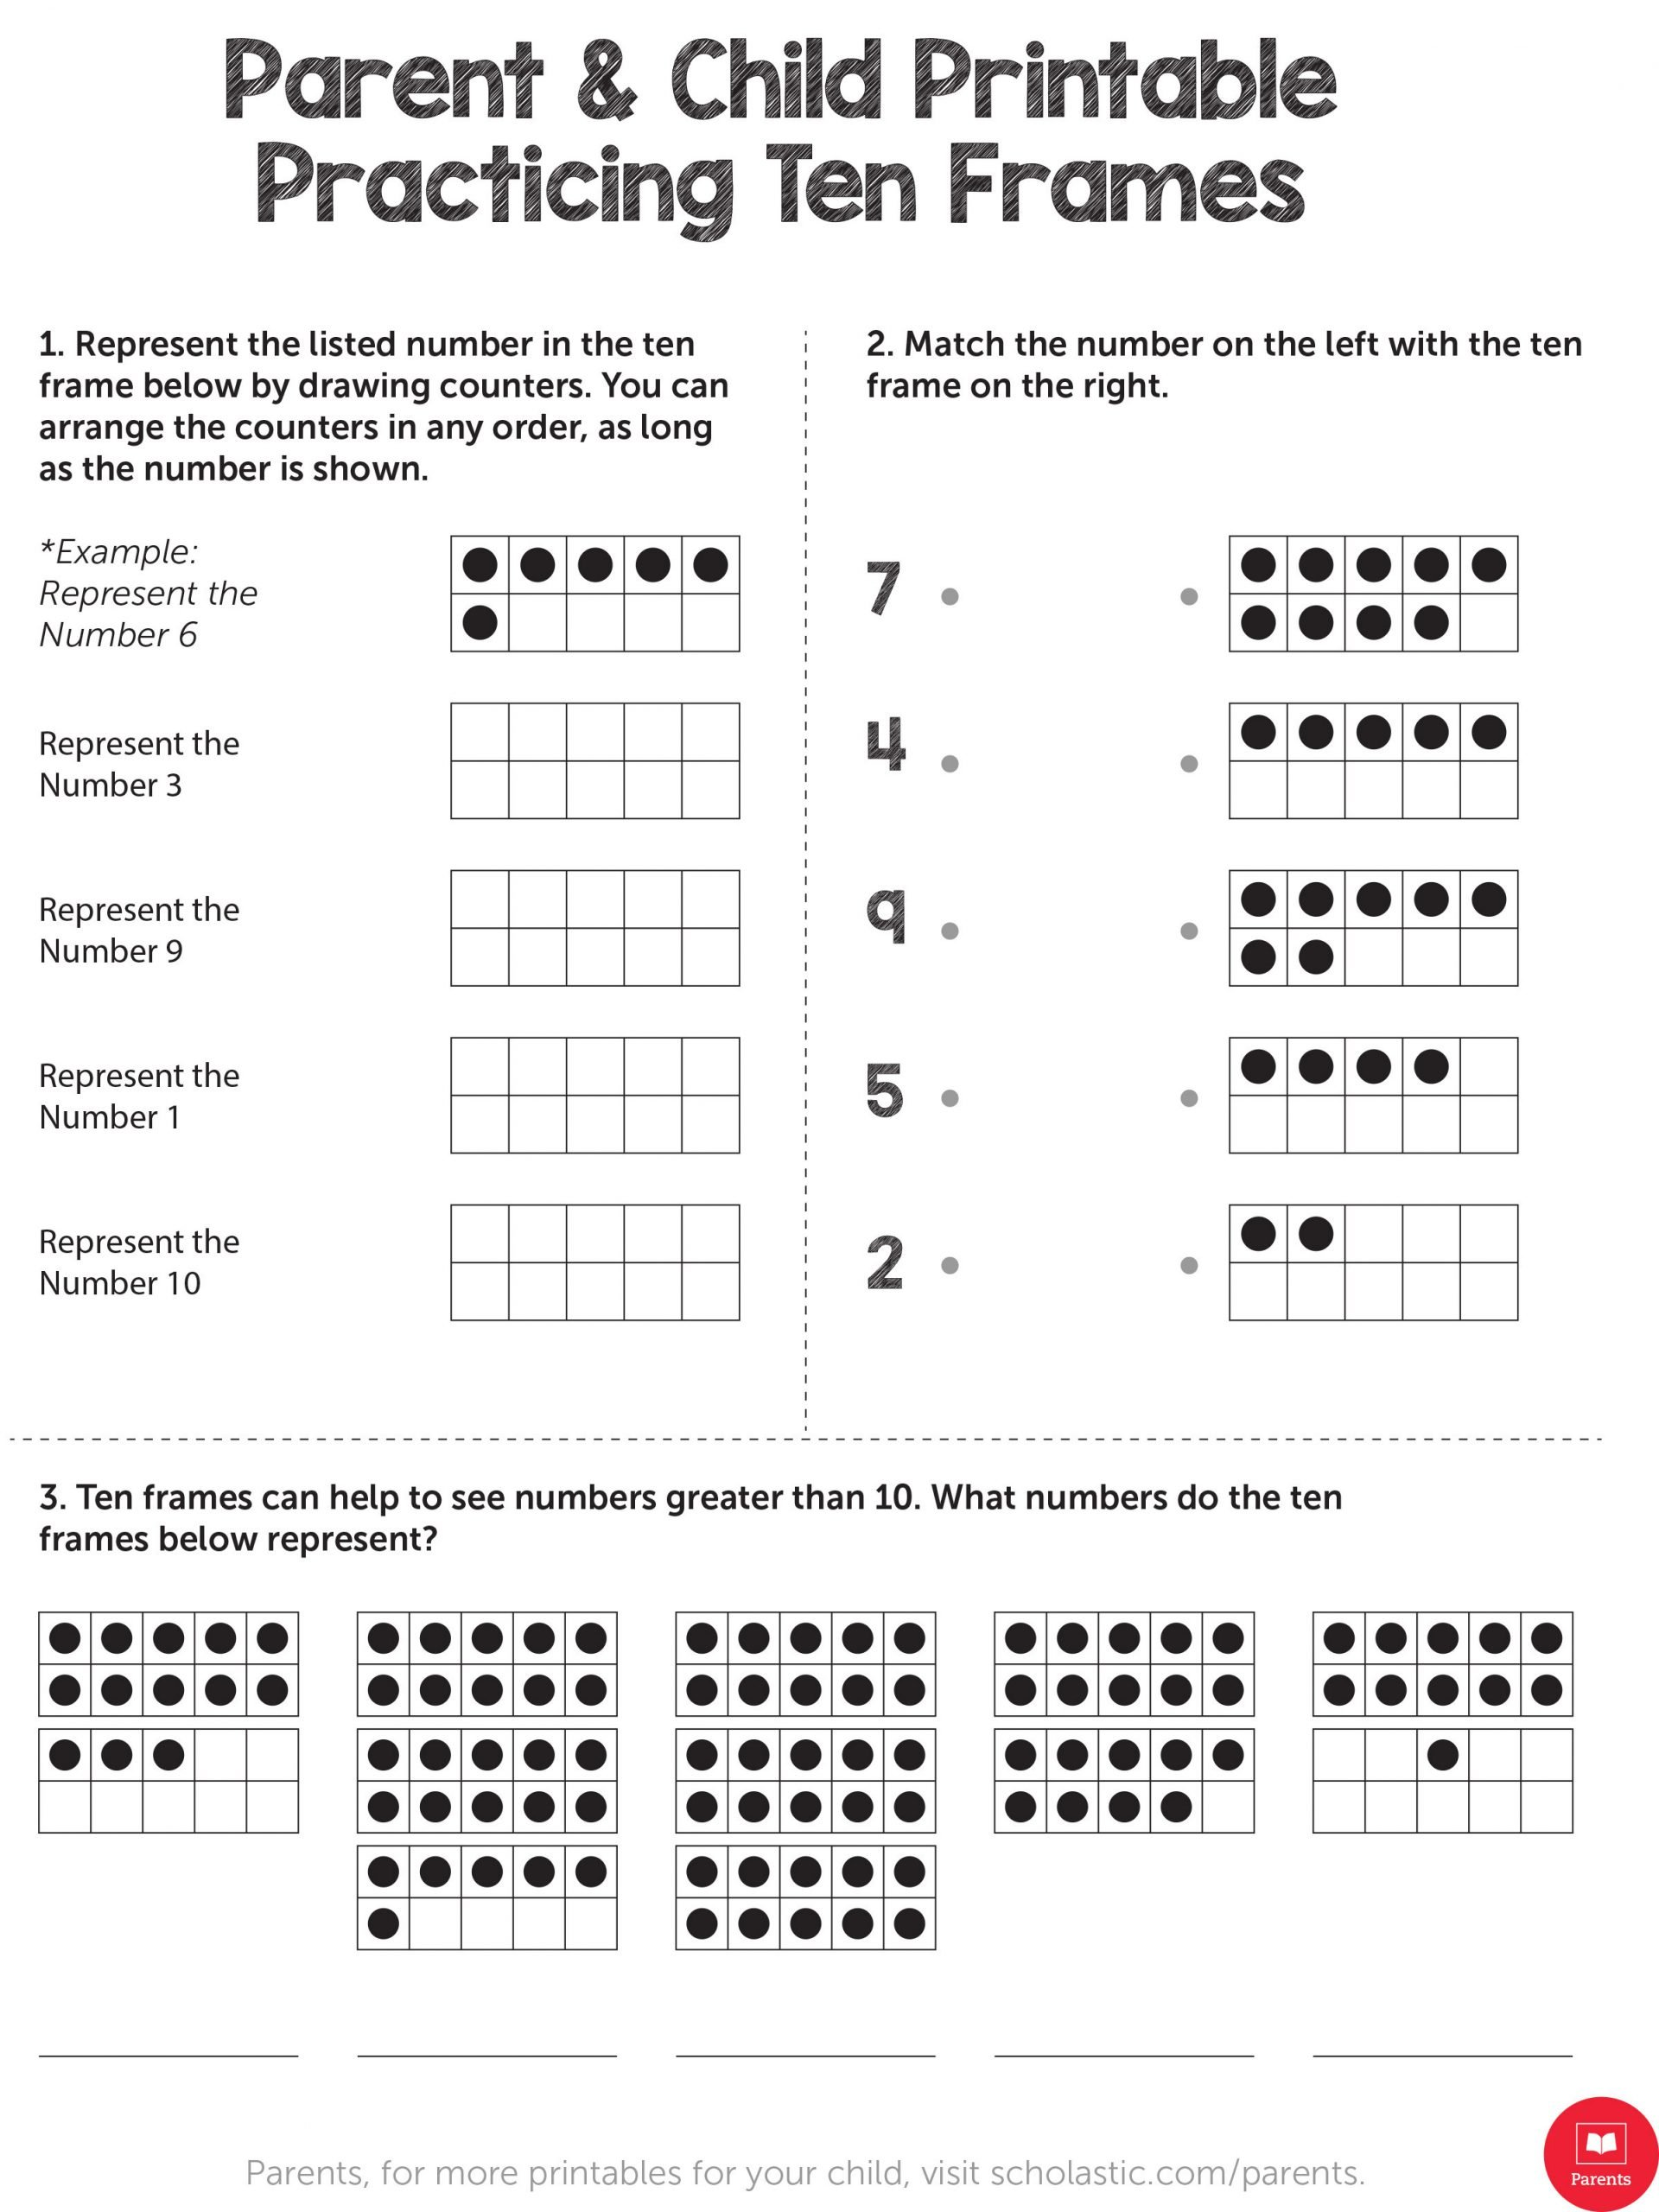 printable practicing ten frames 1